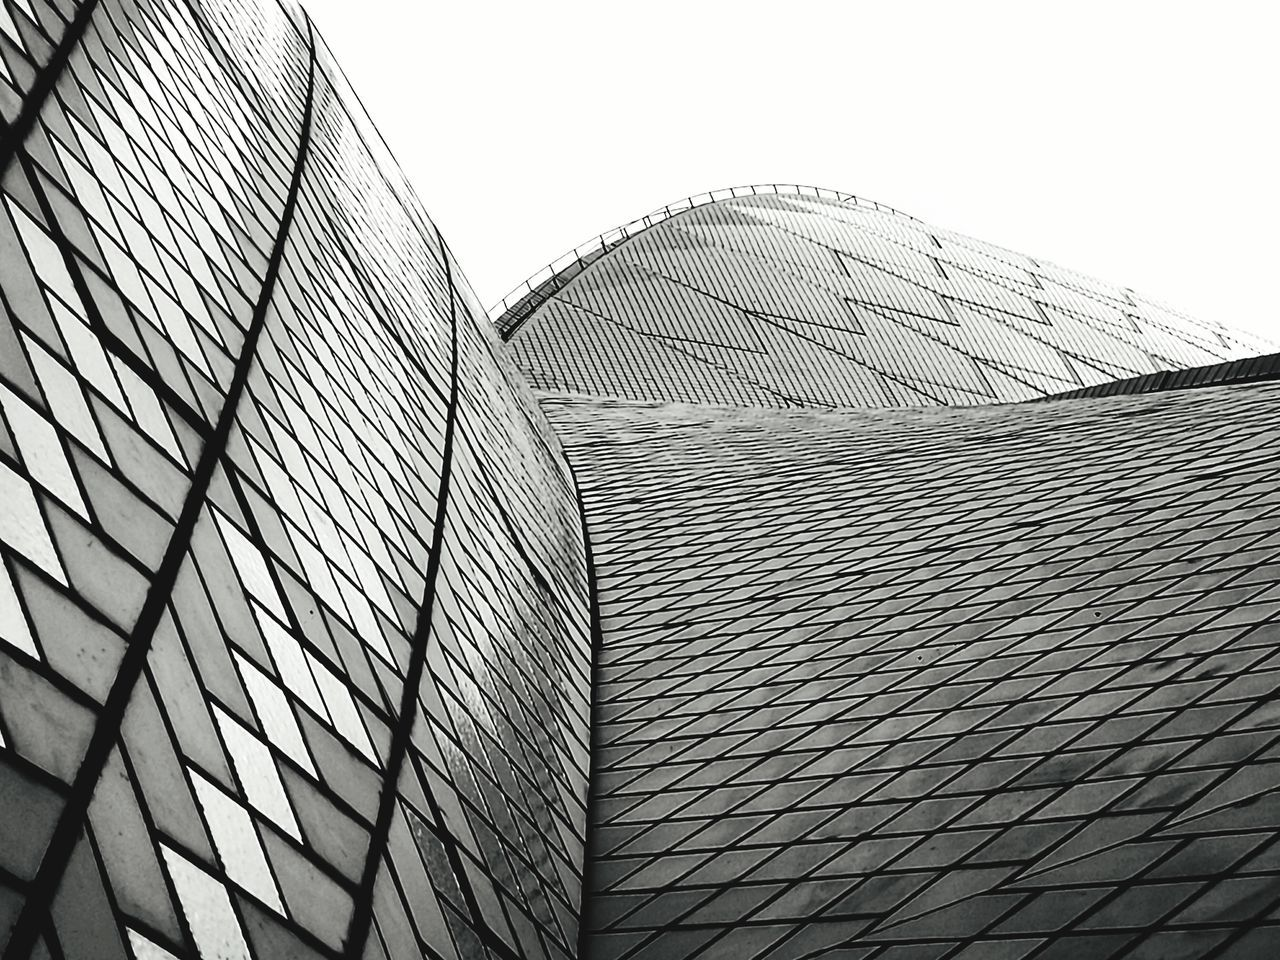 Pattern Sky Architecture Abstract Low Angle View Futuristic No People Outdoors Day Close-up Cool Art ArtWork Check This Out Fine Art Photography Cheese! Standing Opra House Architecture Australia Austrianphotographers Aussie Black And White Black & White Artistic Photo Traveling Home For The Holidays